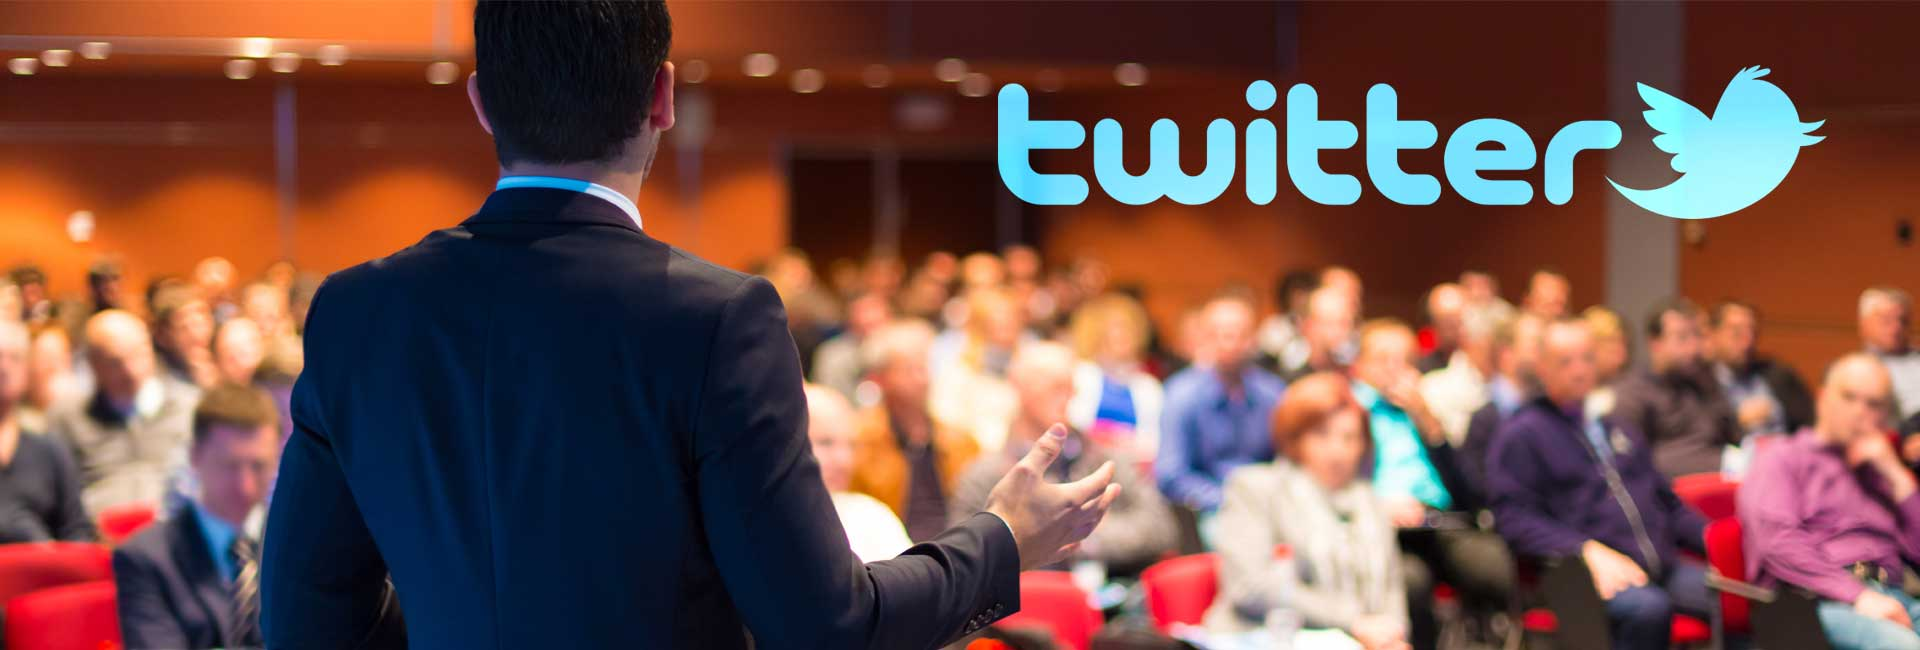 twitter webcast company live stream to periscope live stream